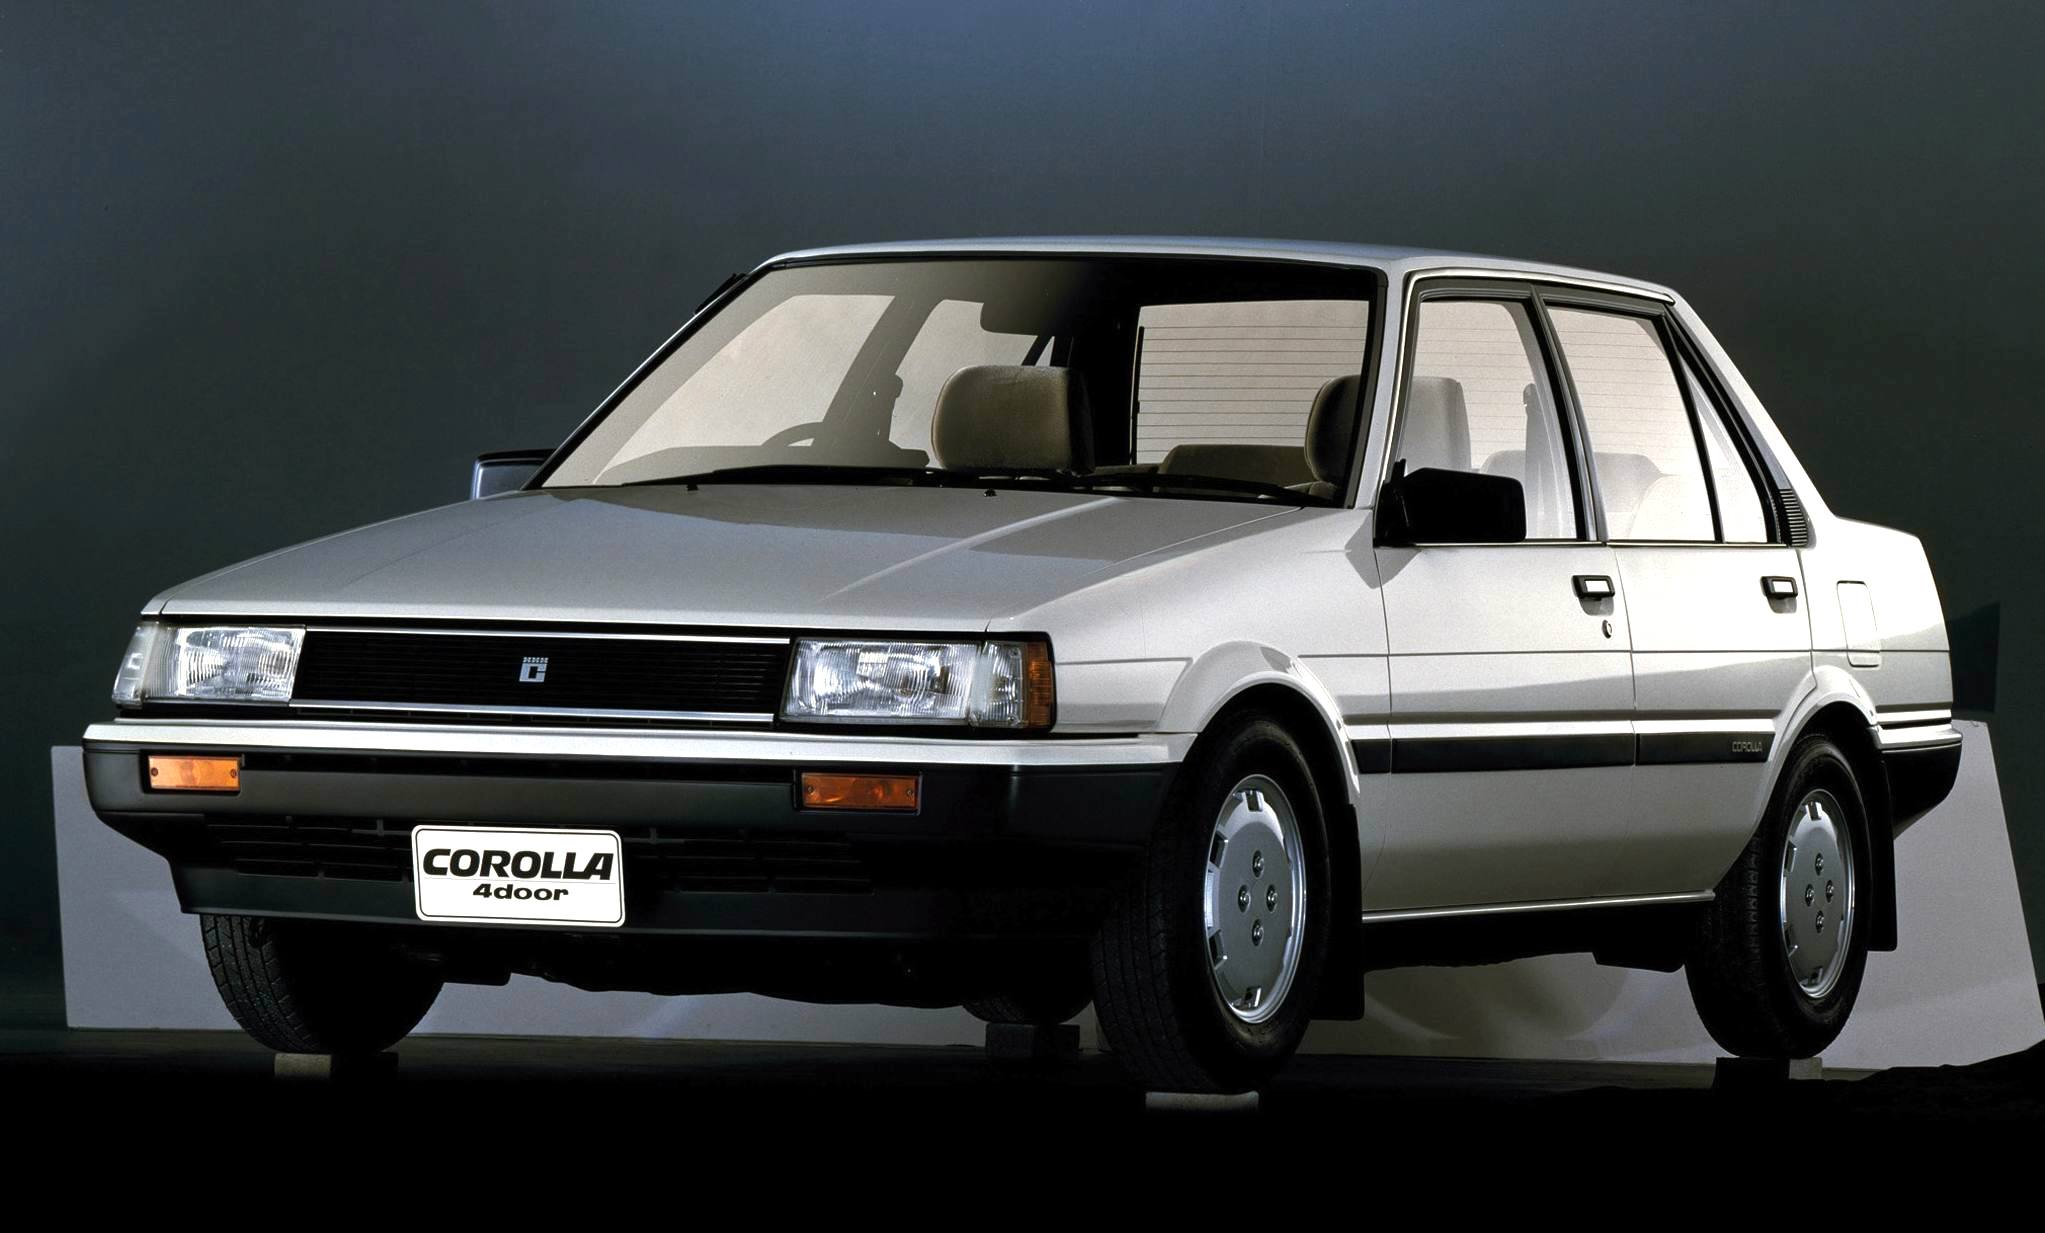 world 1981 1989 toyota corolla from strength to strength best selling cars blog. Black Bedroom Furniture Sets. Home Design Ideas